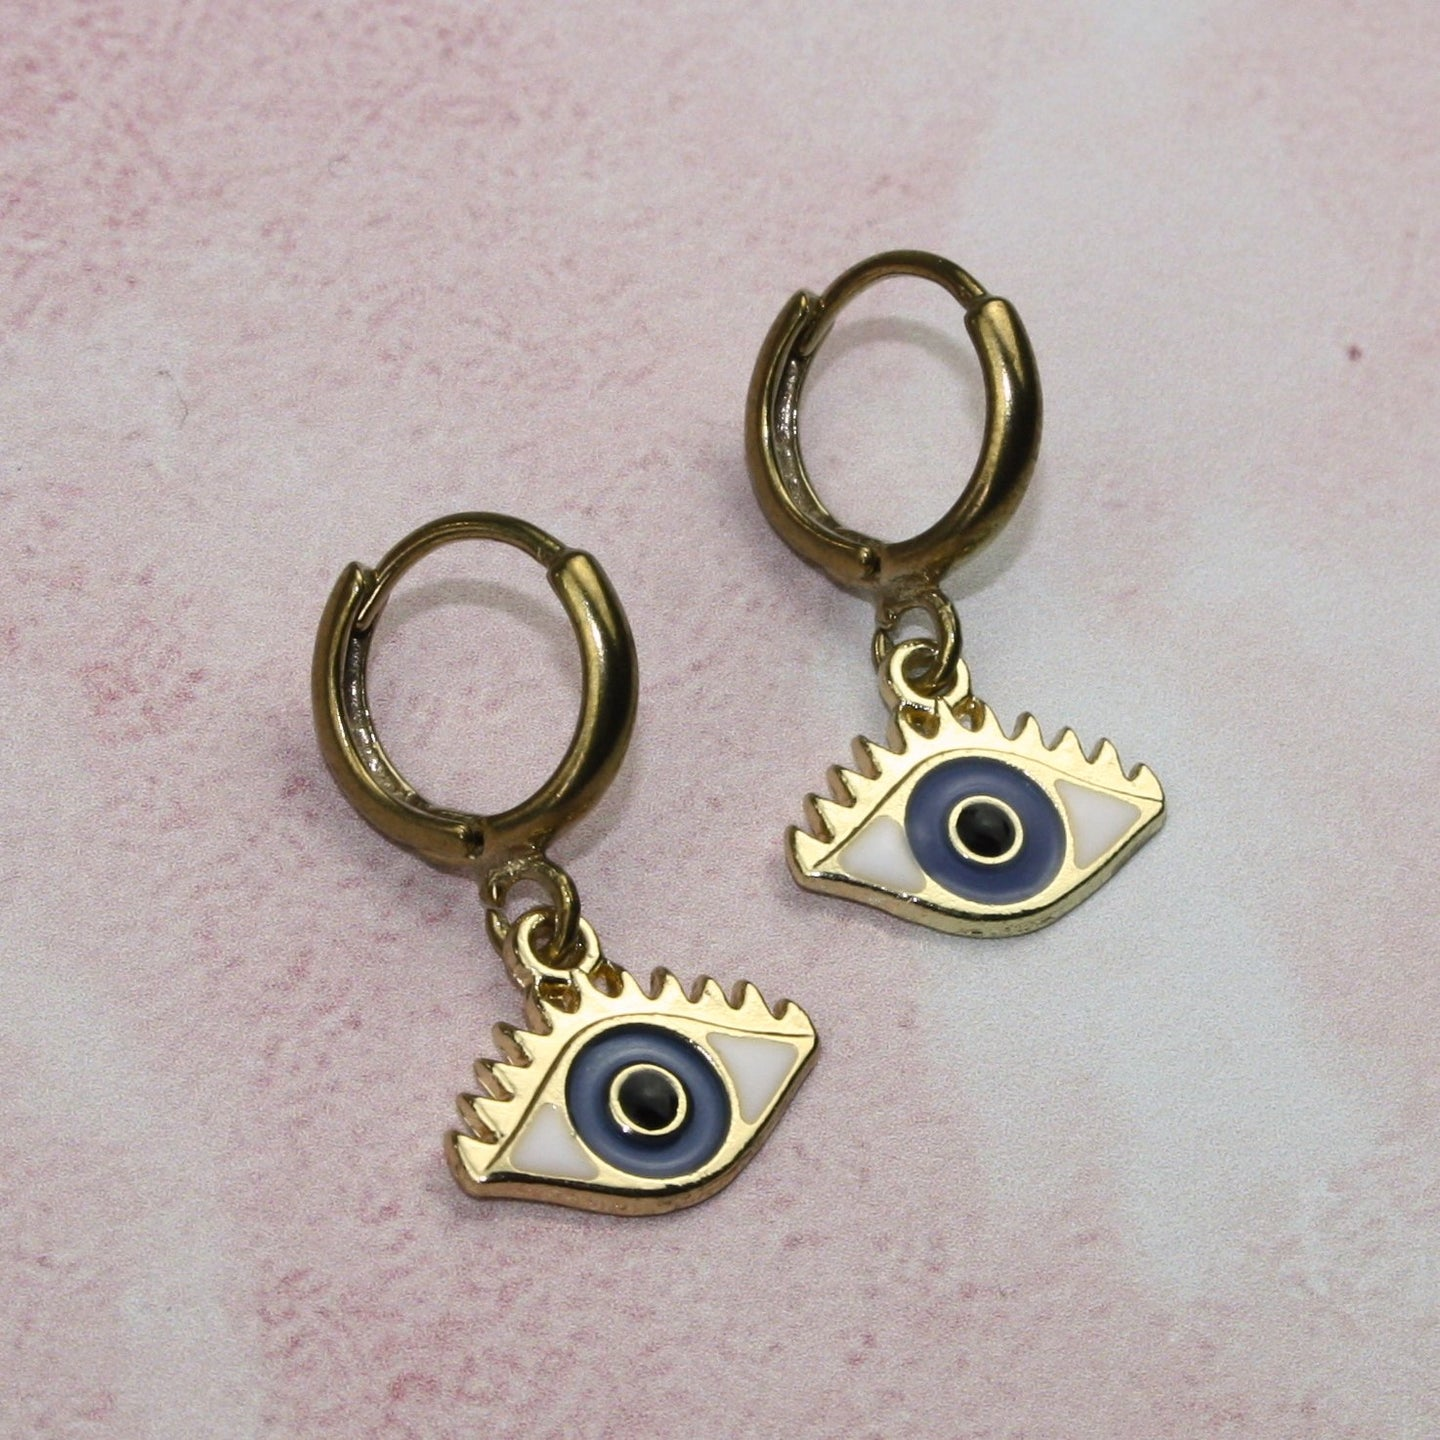 Gold Plated Eye Hoop Earrings